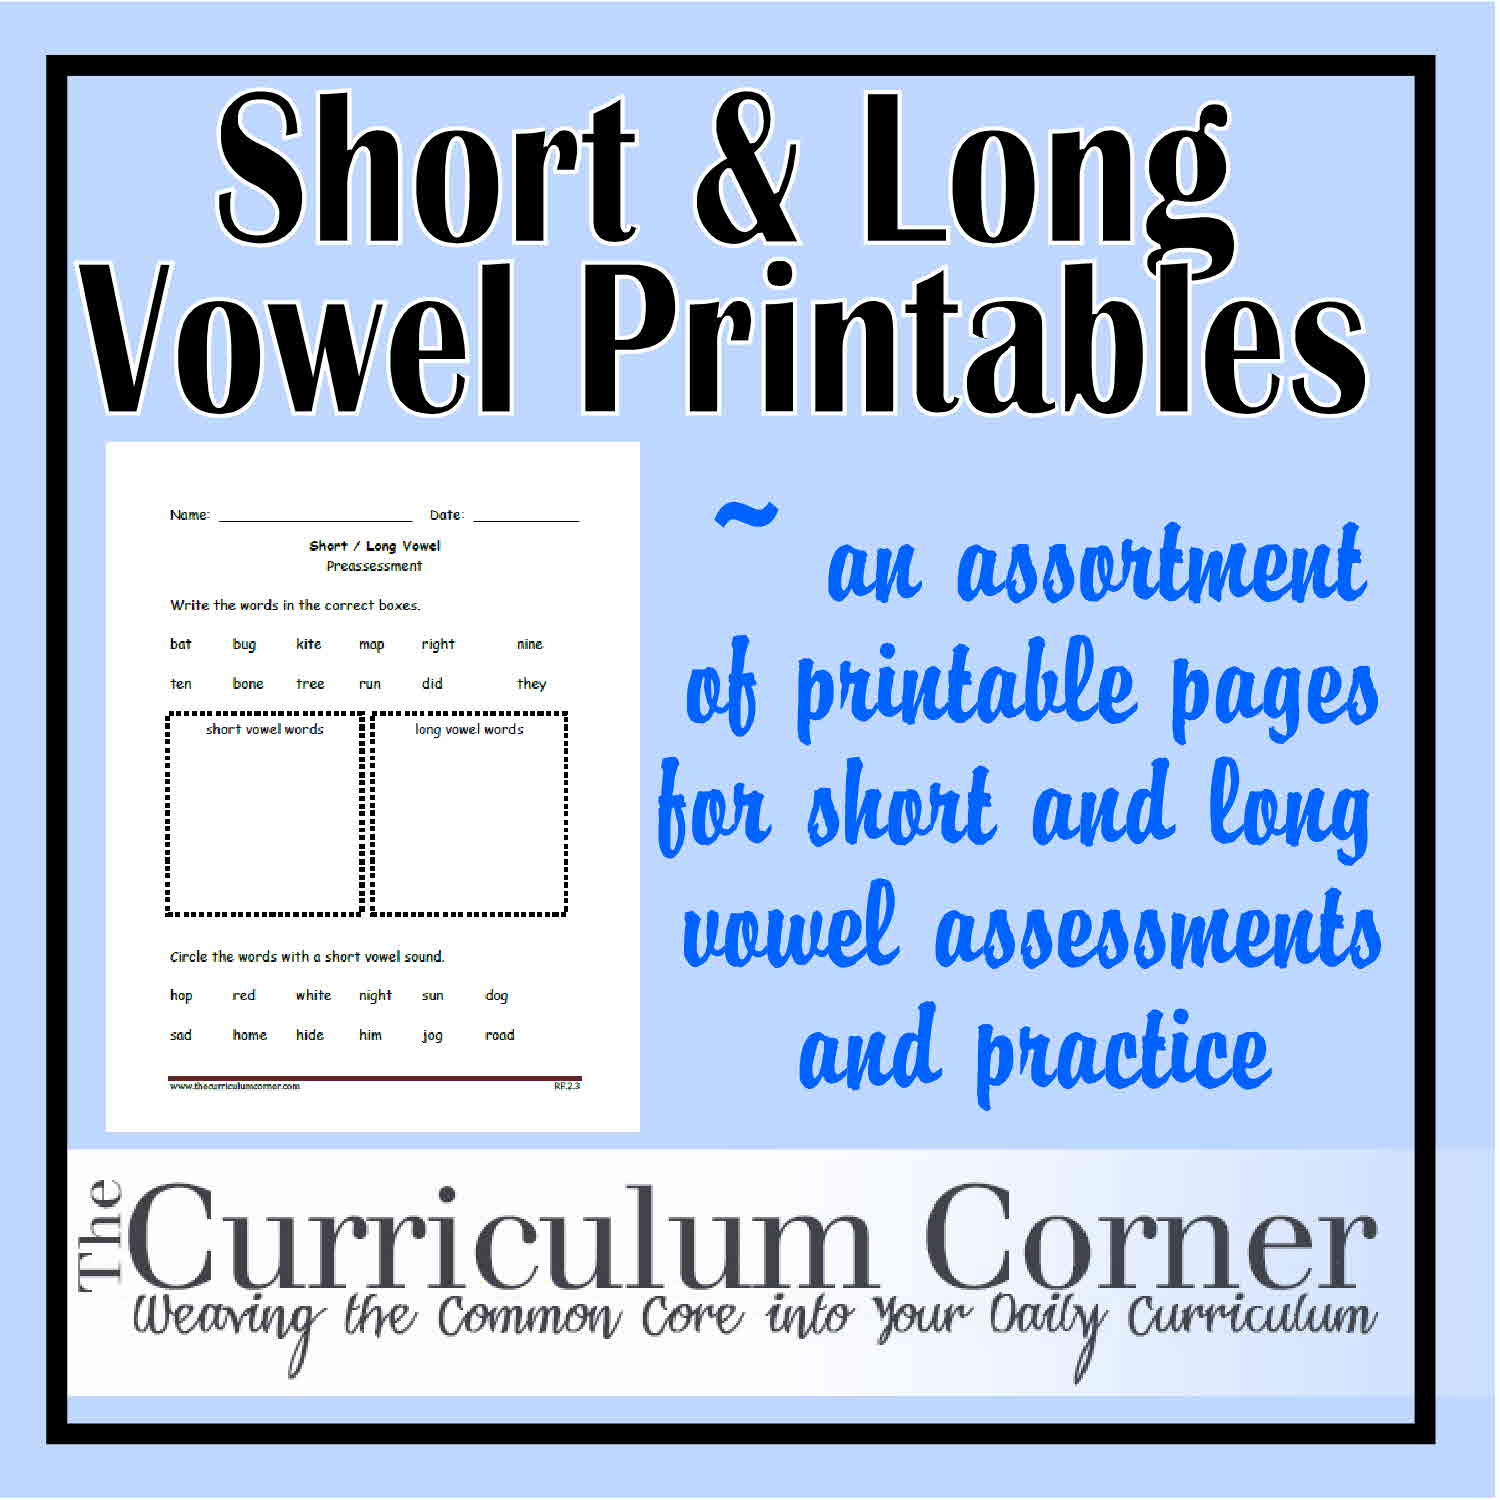 Free Printable Long Vowel Worksheets Short and Long Vowel sound Printables the Curriculum